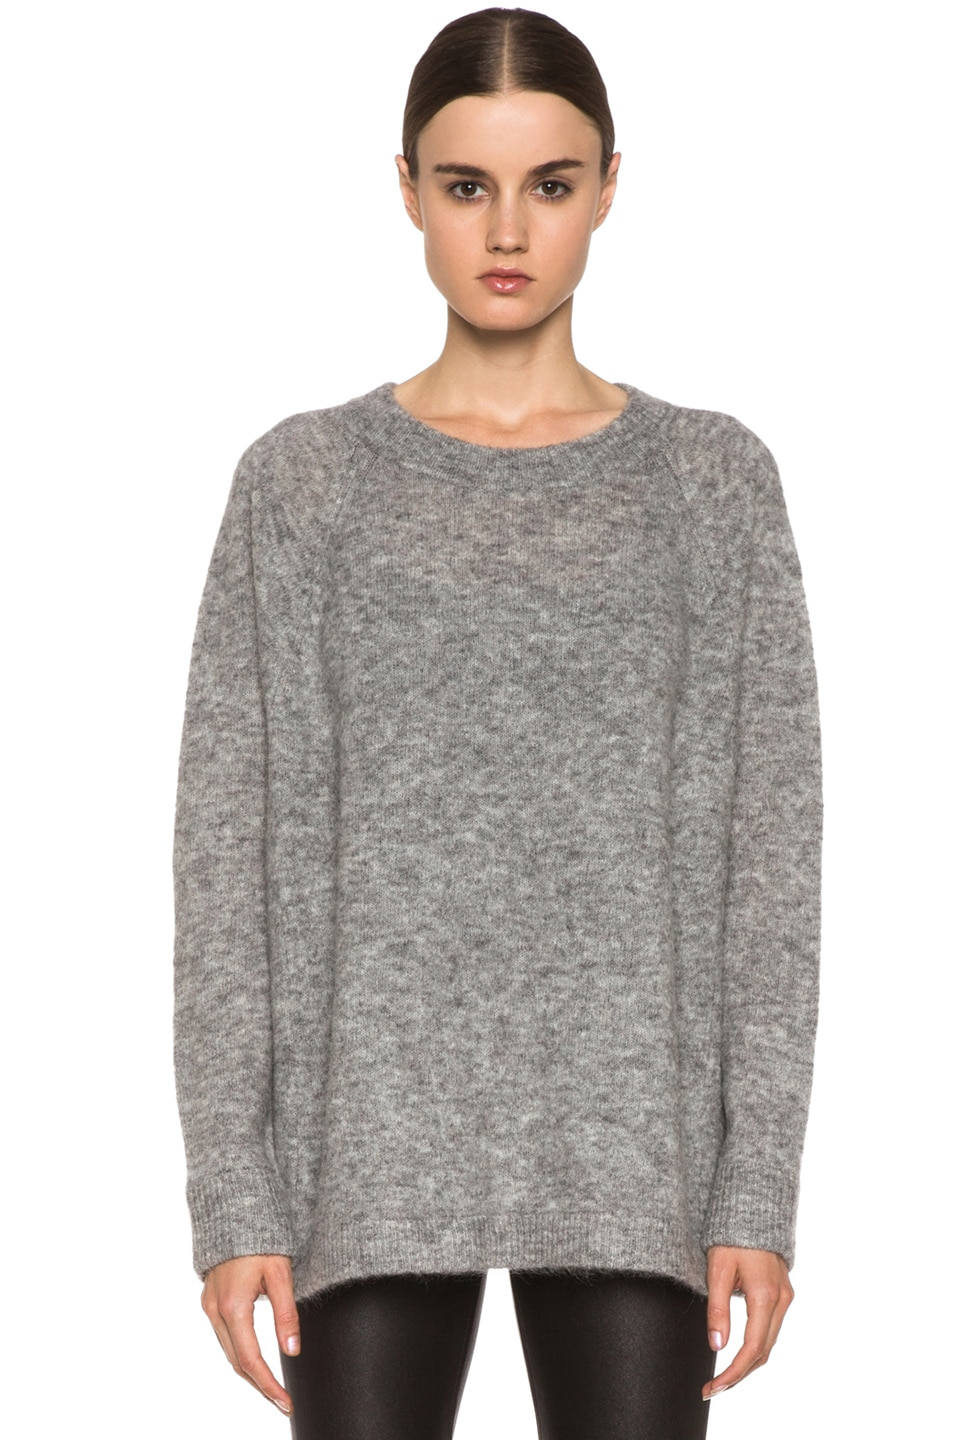 c48a7960fcdd5 Image 1 of Acne Studios Rue Mohair-Blend Sweater in Grey Melanage